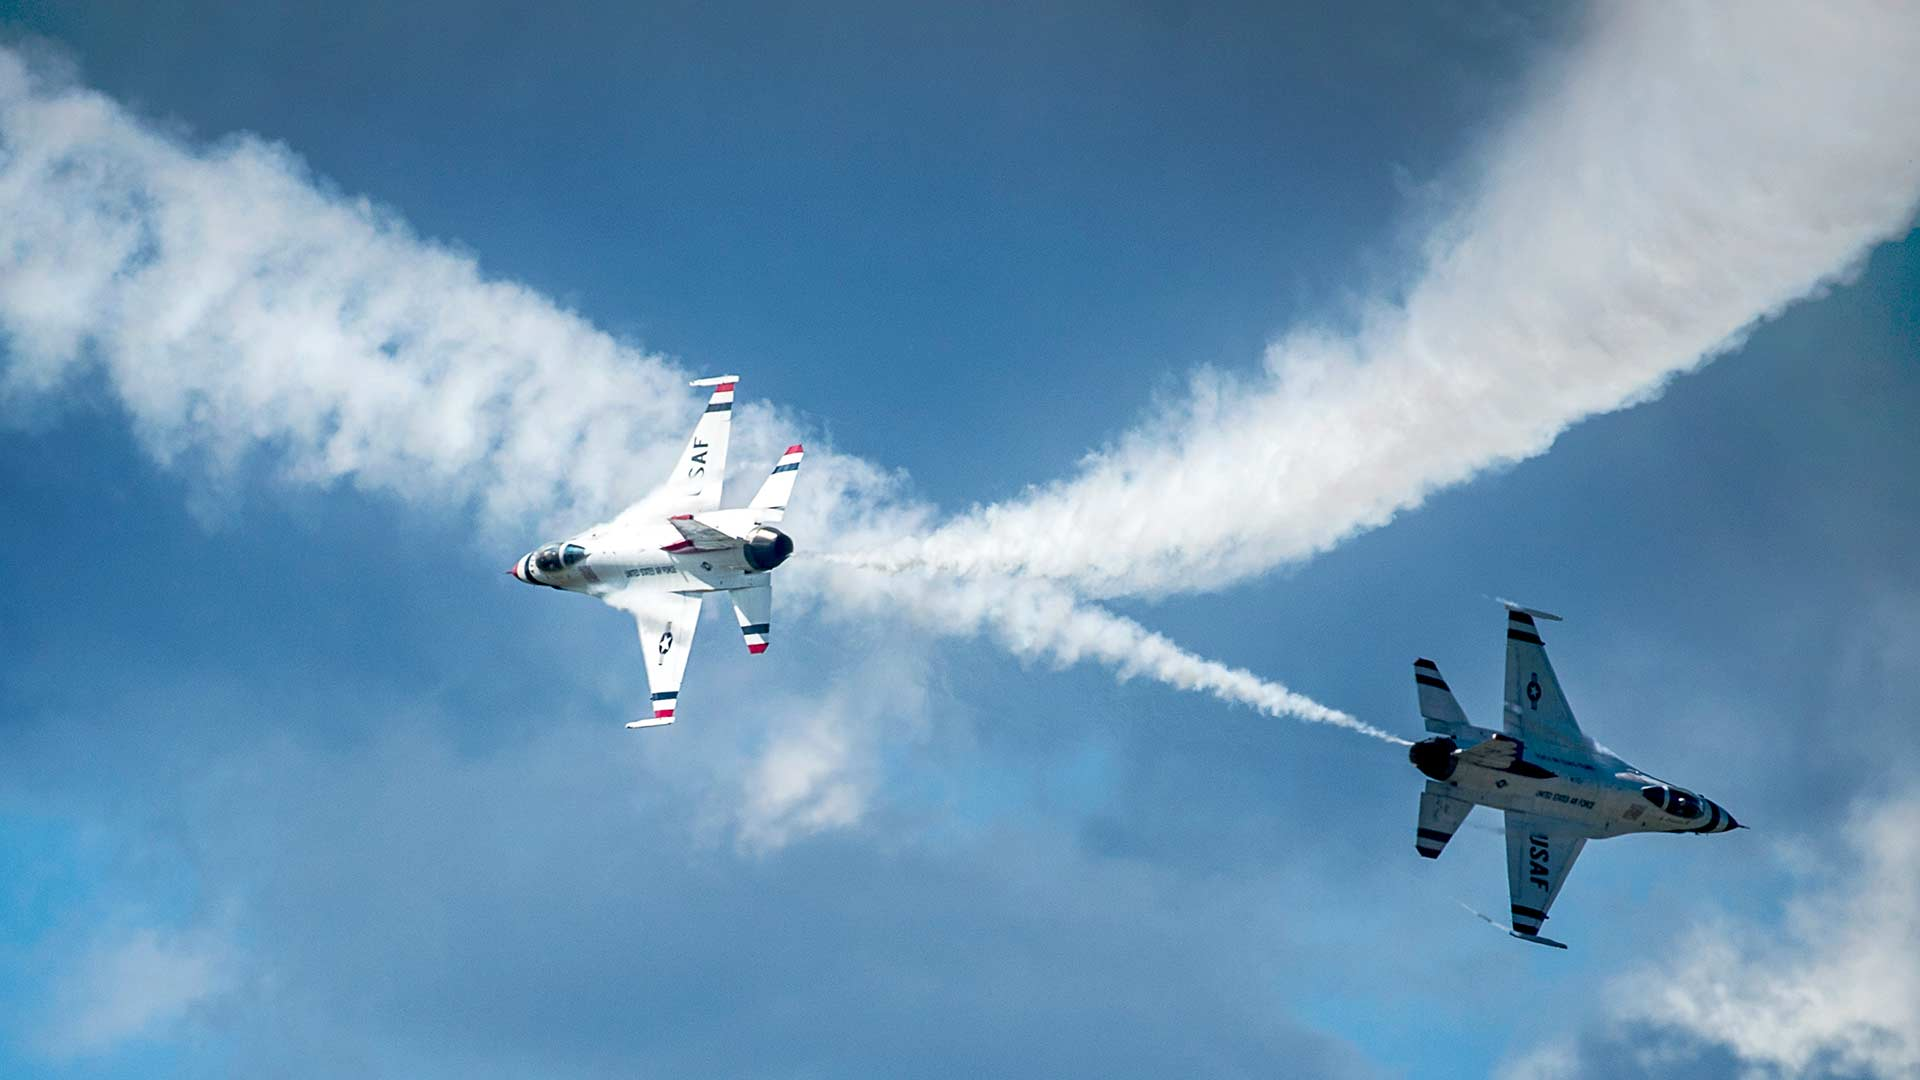 USAF Thunderbirds perform a maneuver during a practice show in Montana, 2014.